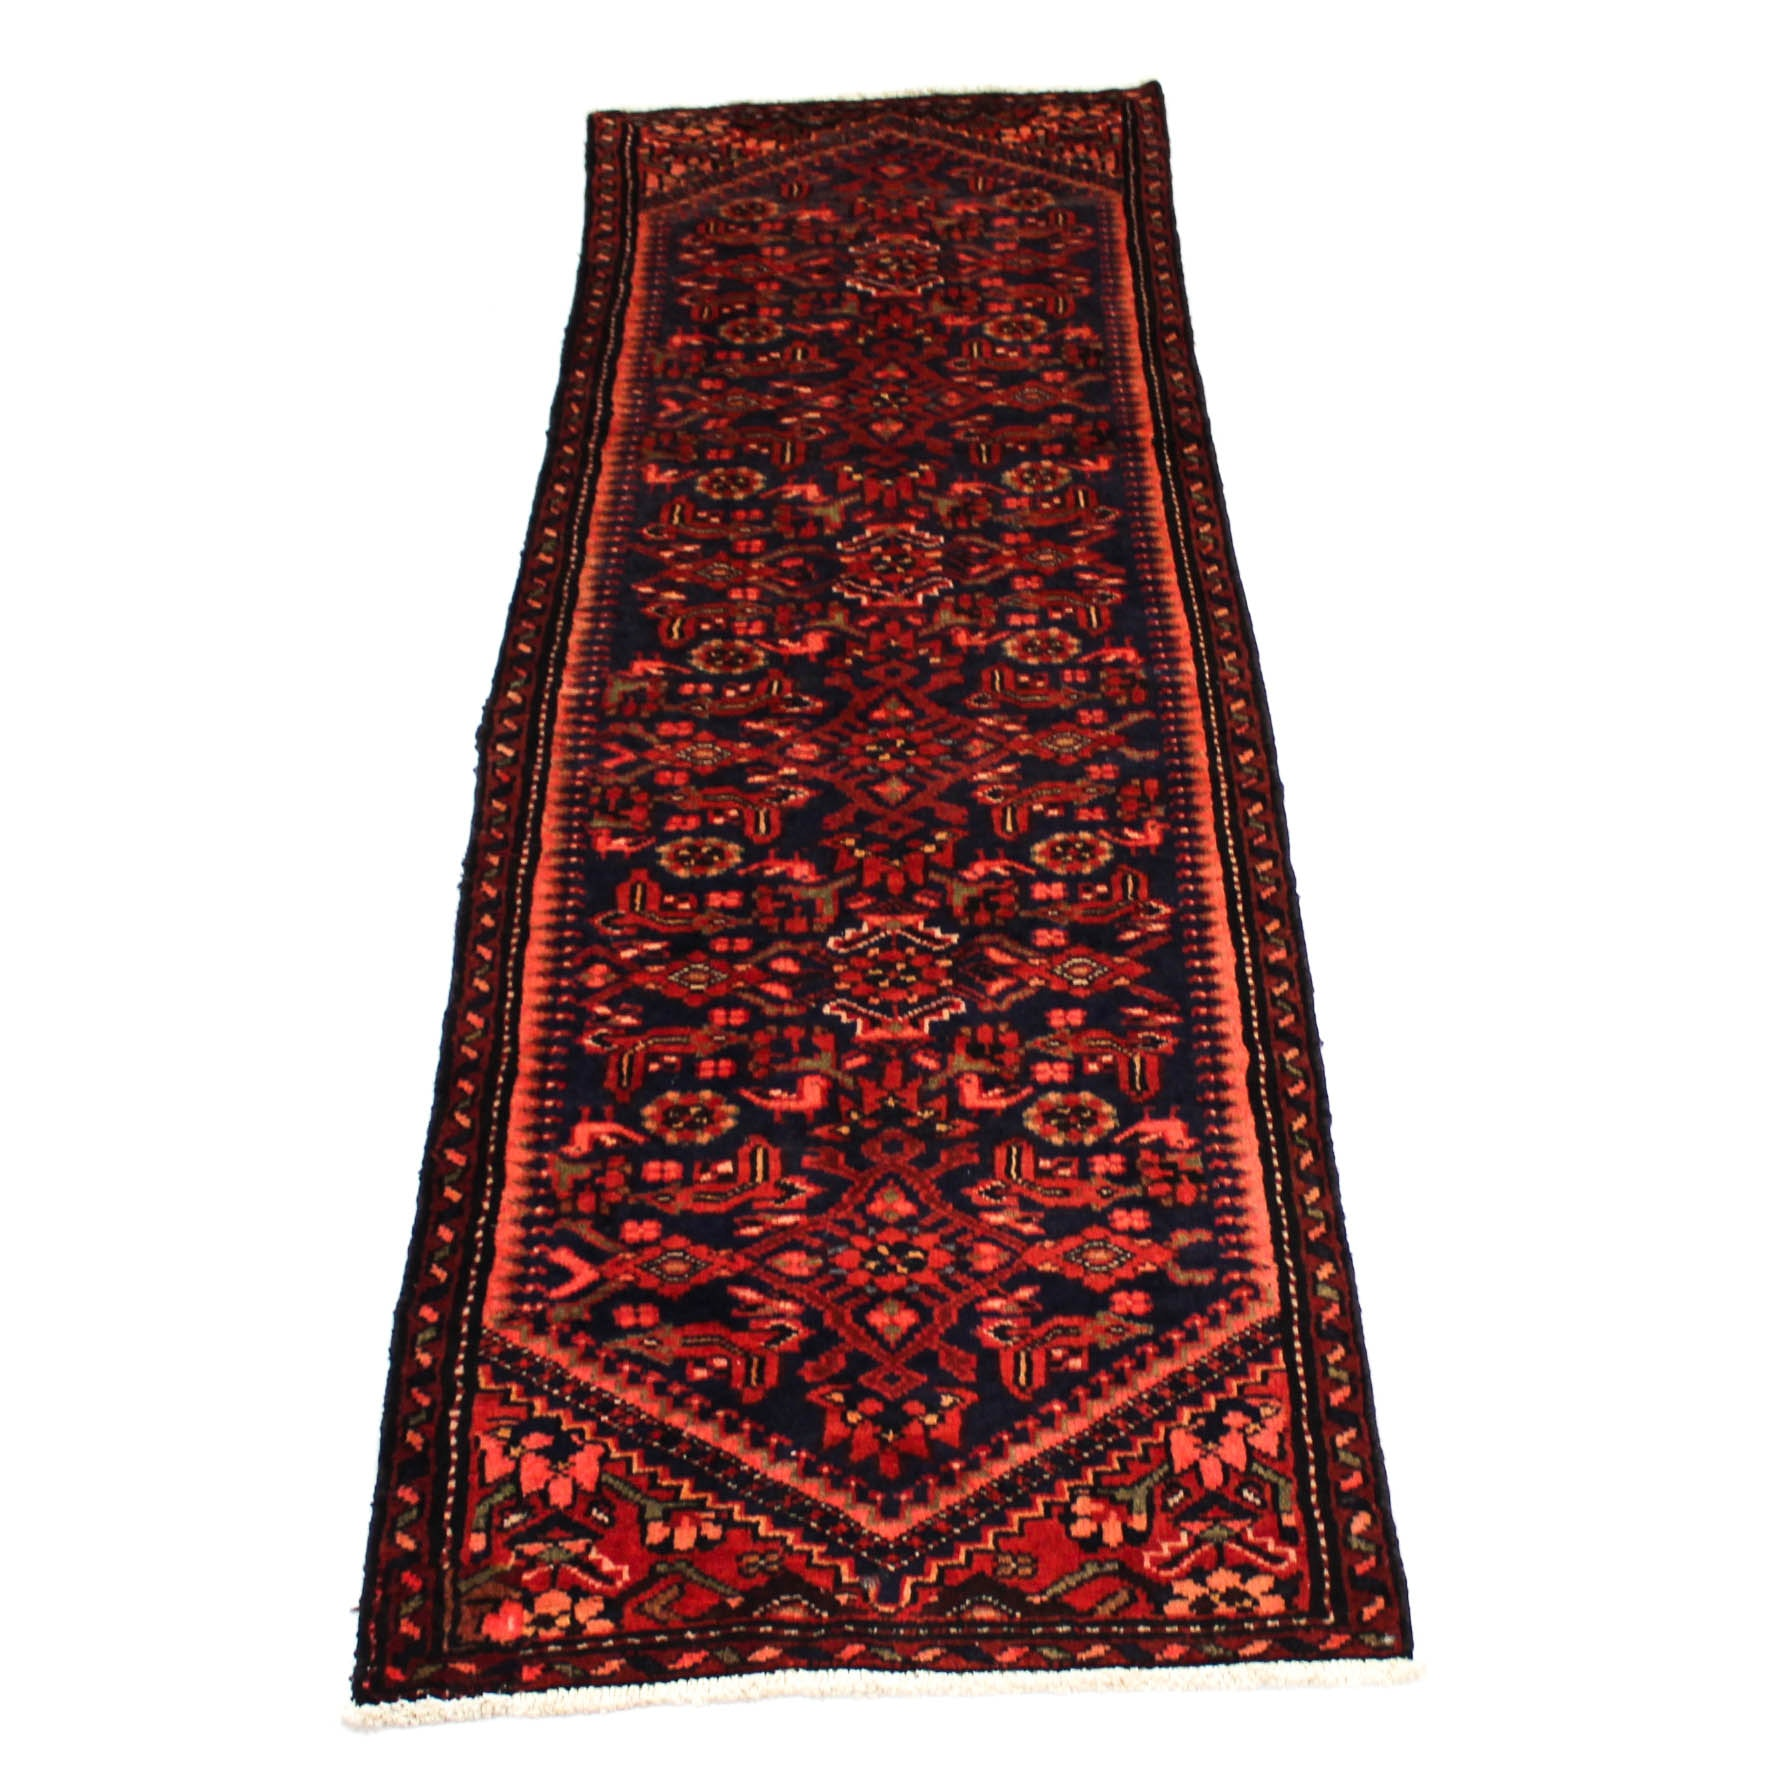 2'9 x 9' Semi-Antique Hand-Knotted Persian Mahal Pictorial Carpet Runner